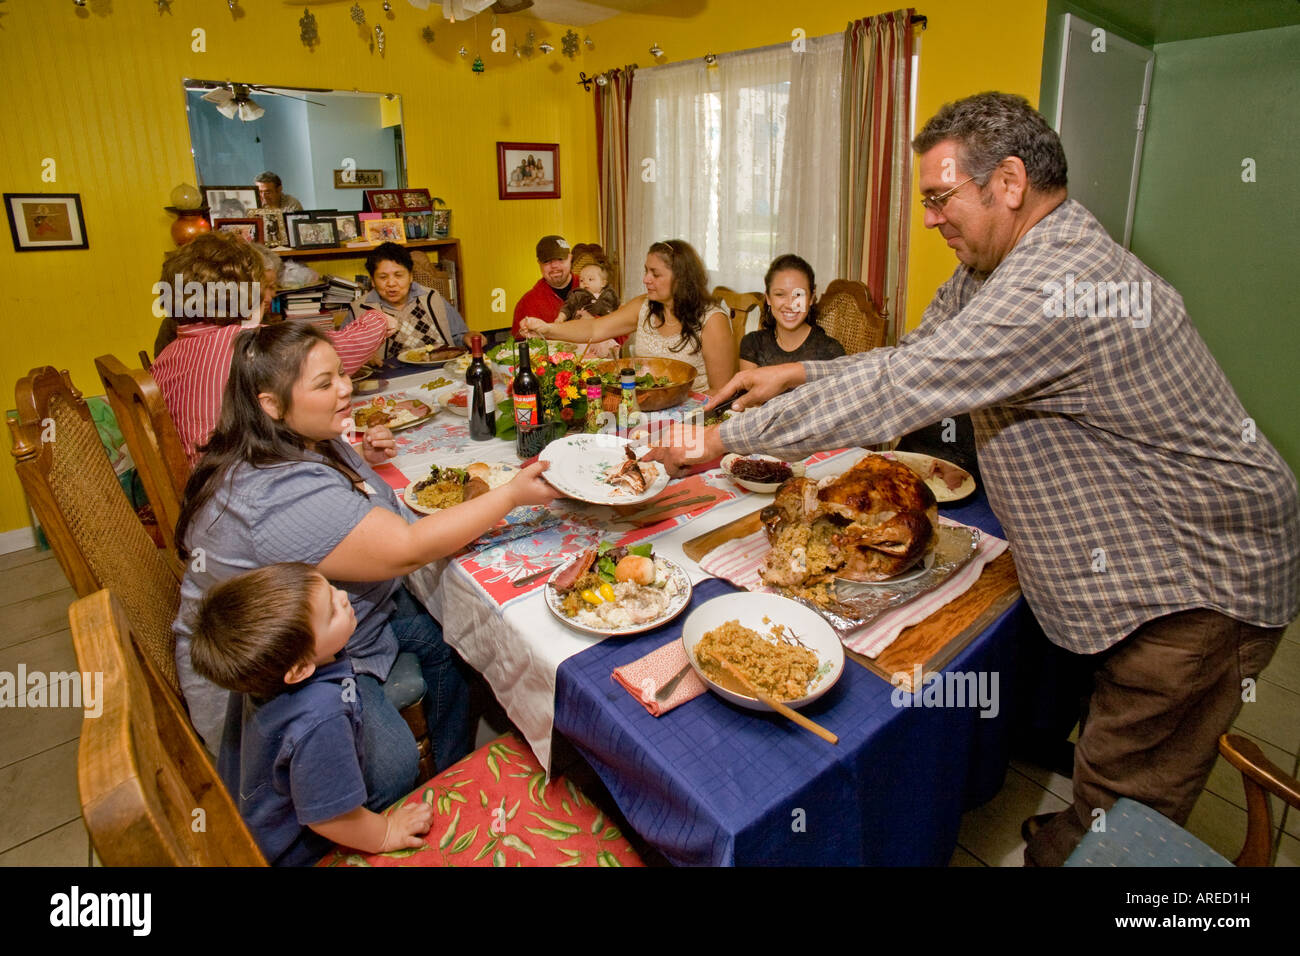 A Hispanic father carves the turkey at a Thanksgiving dinner - Stock Image